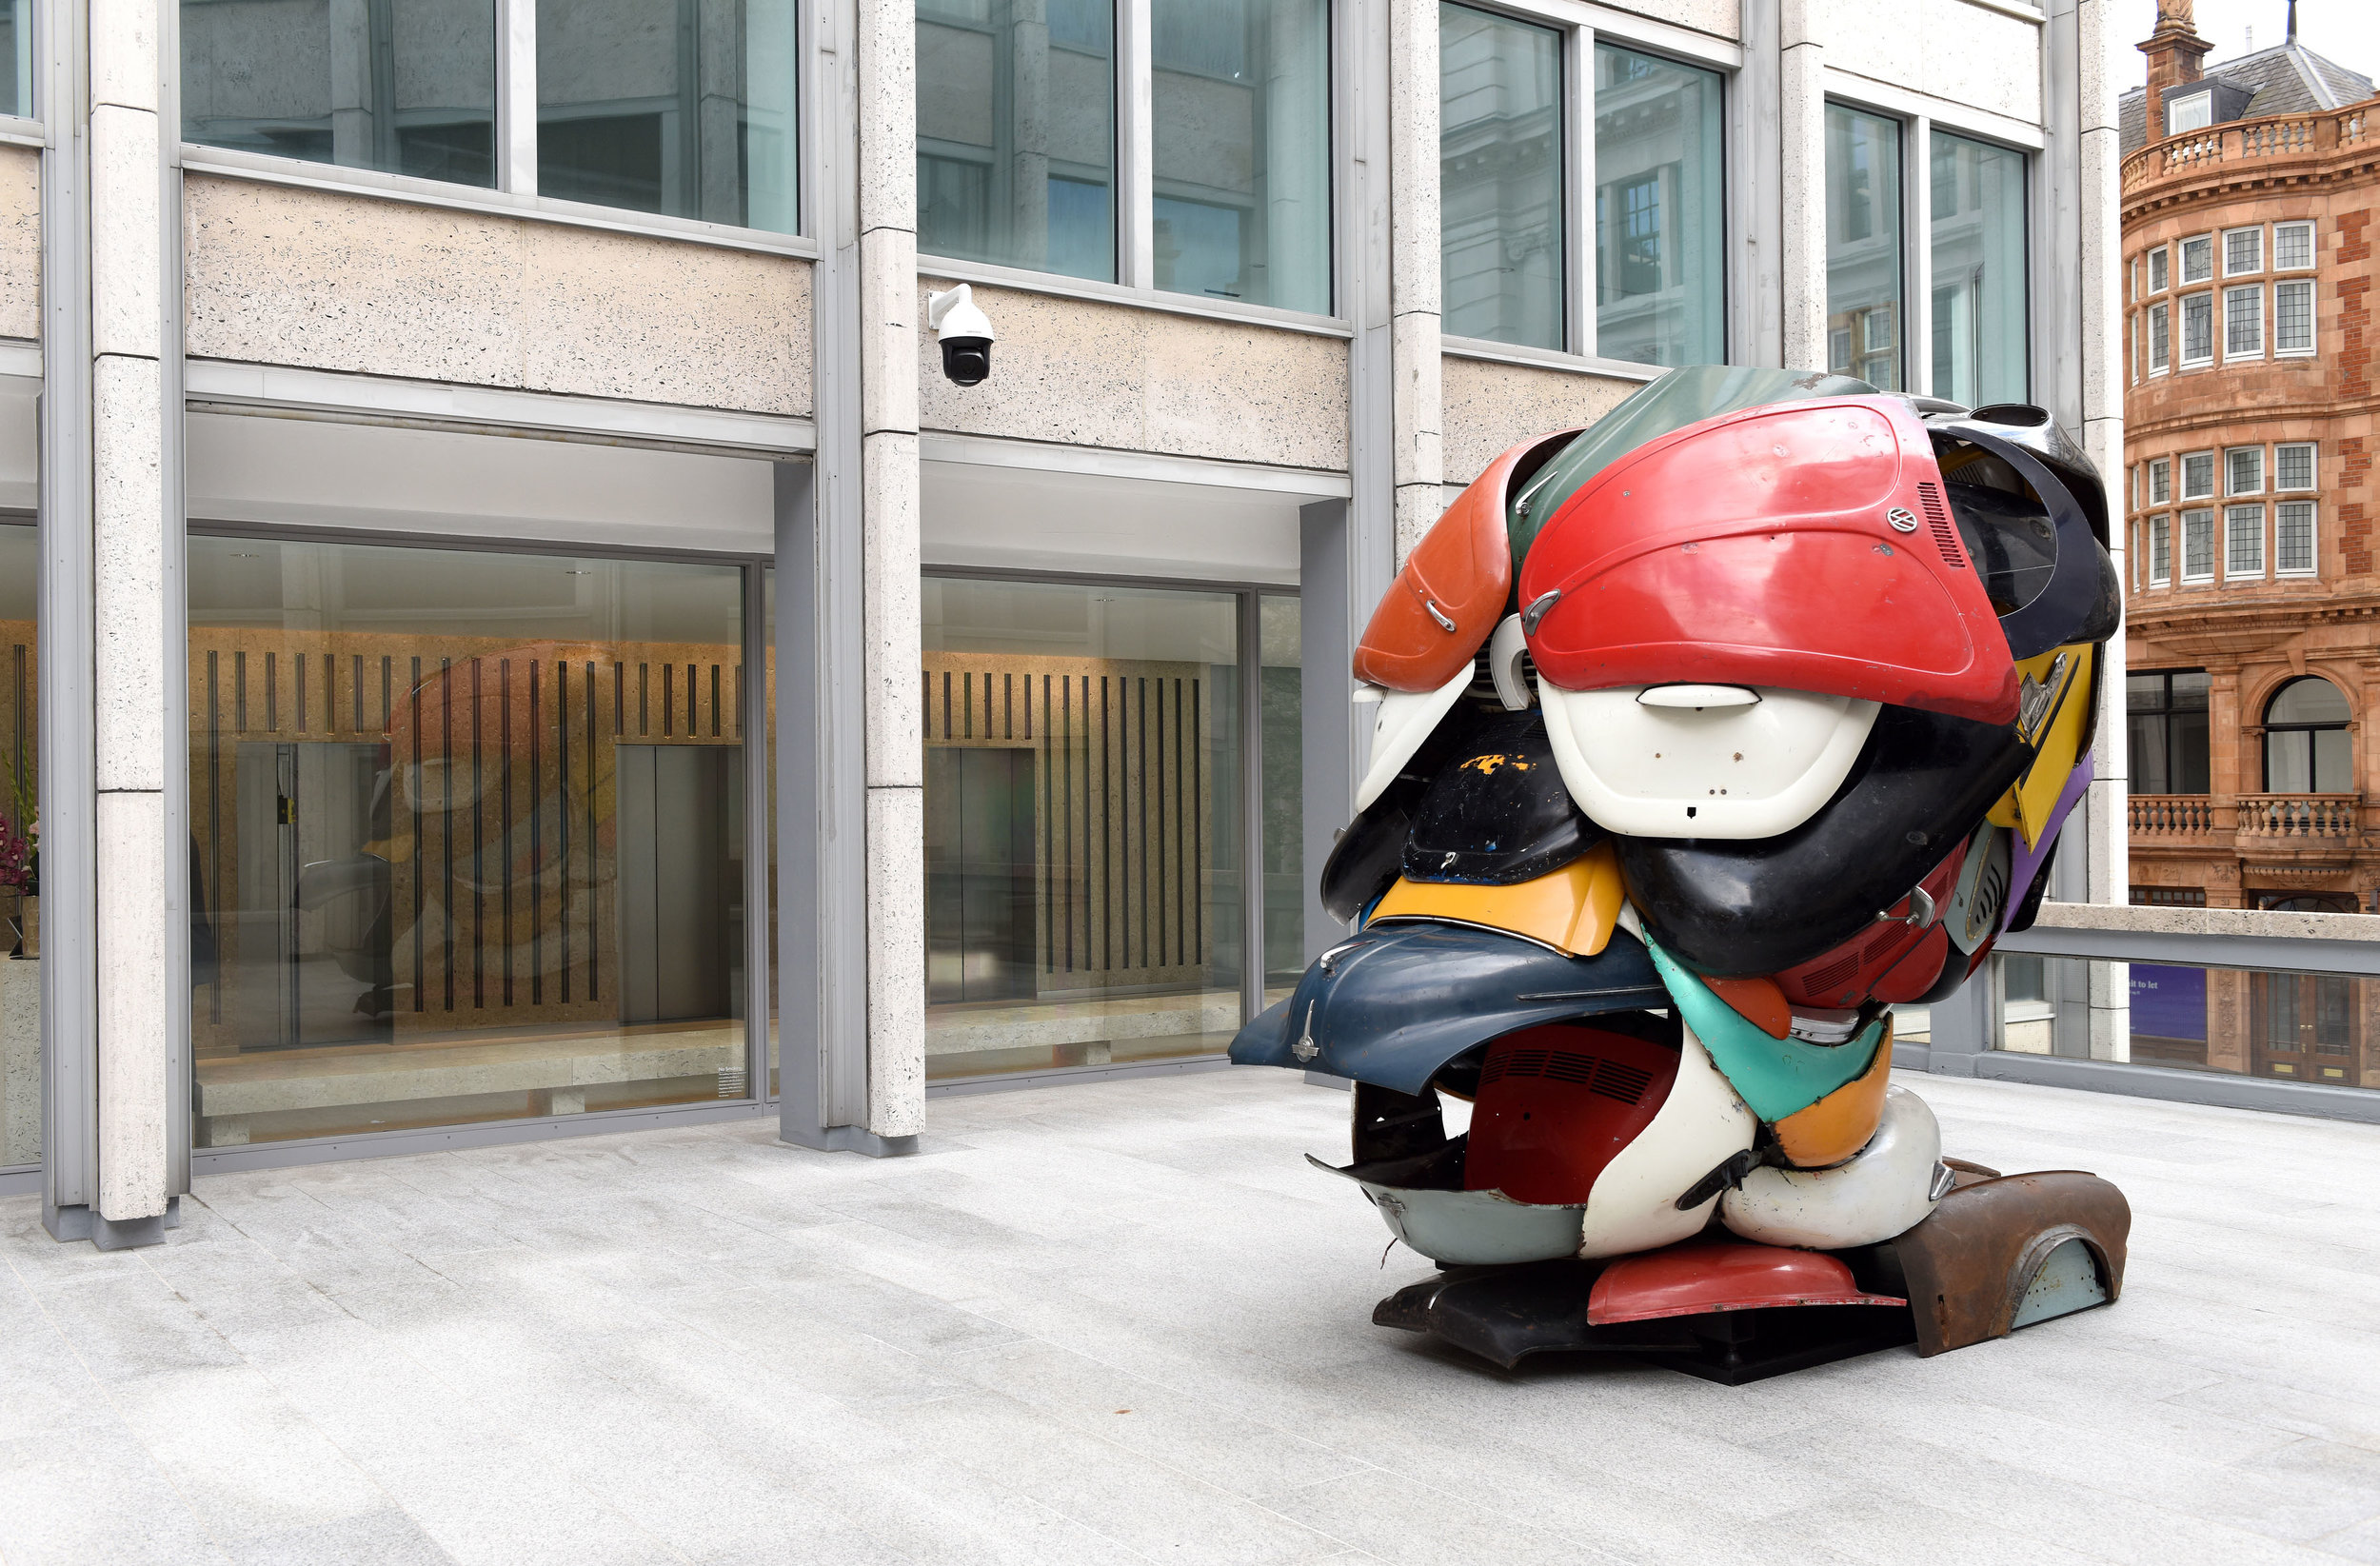 ZAK OVE'S 'AUTONOMOUS MORRIS' SCULPTURE LAUNCHED IN SMITHSON PLAZA DURING FRIEZE WEEK IN PARTNERSHIP WITH VIGO GALLERY   October 2018